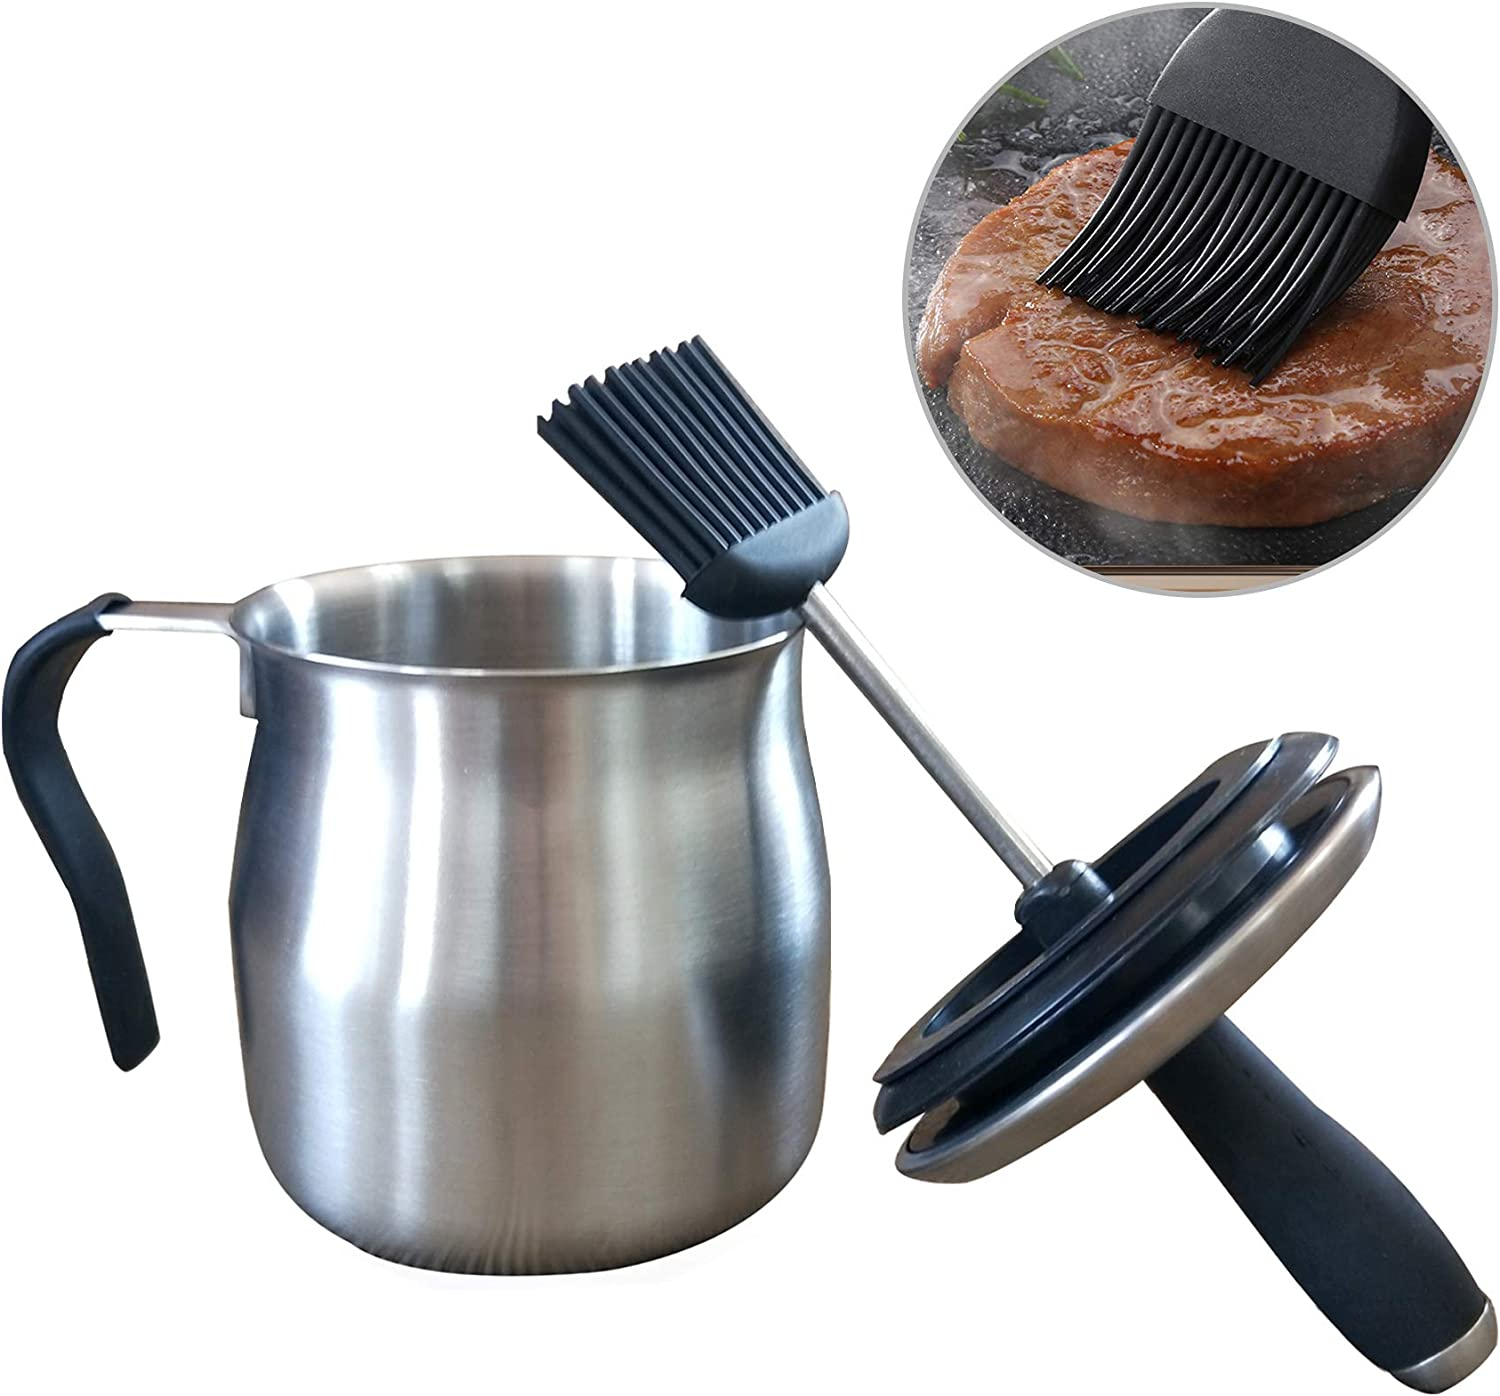 Sauce Pot and Basting Brush Pot Set Grill Gadgets for Men Grilling Smoking Meat Accessories Outdoor BBQ Gifts Kitchen Tools for Cooking Barbecue Pastry Baking Party Cakes Desserts : Garden & Outdoor